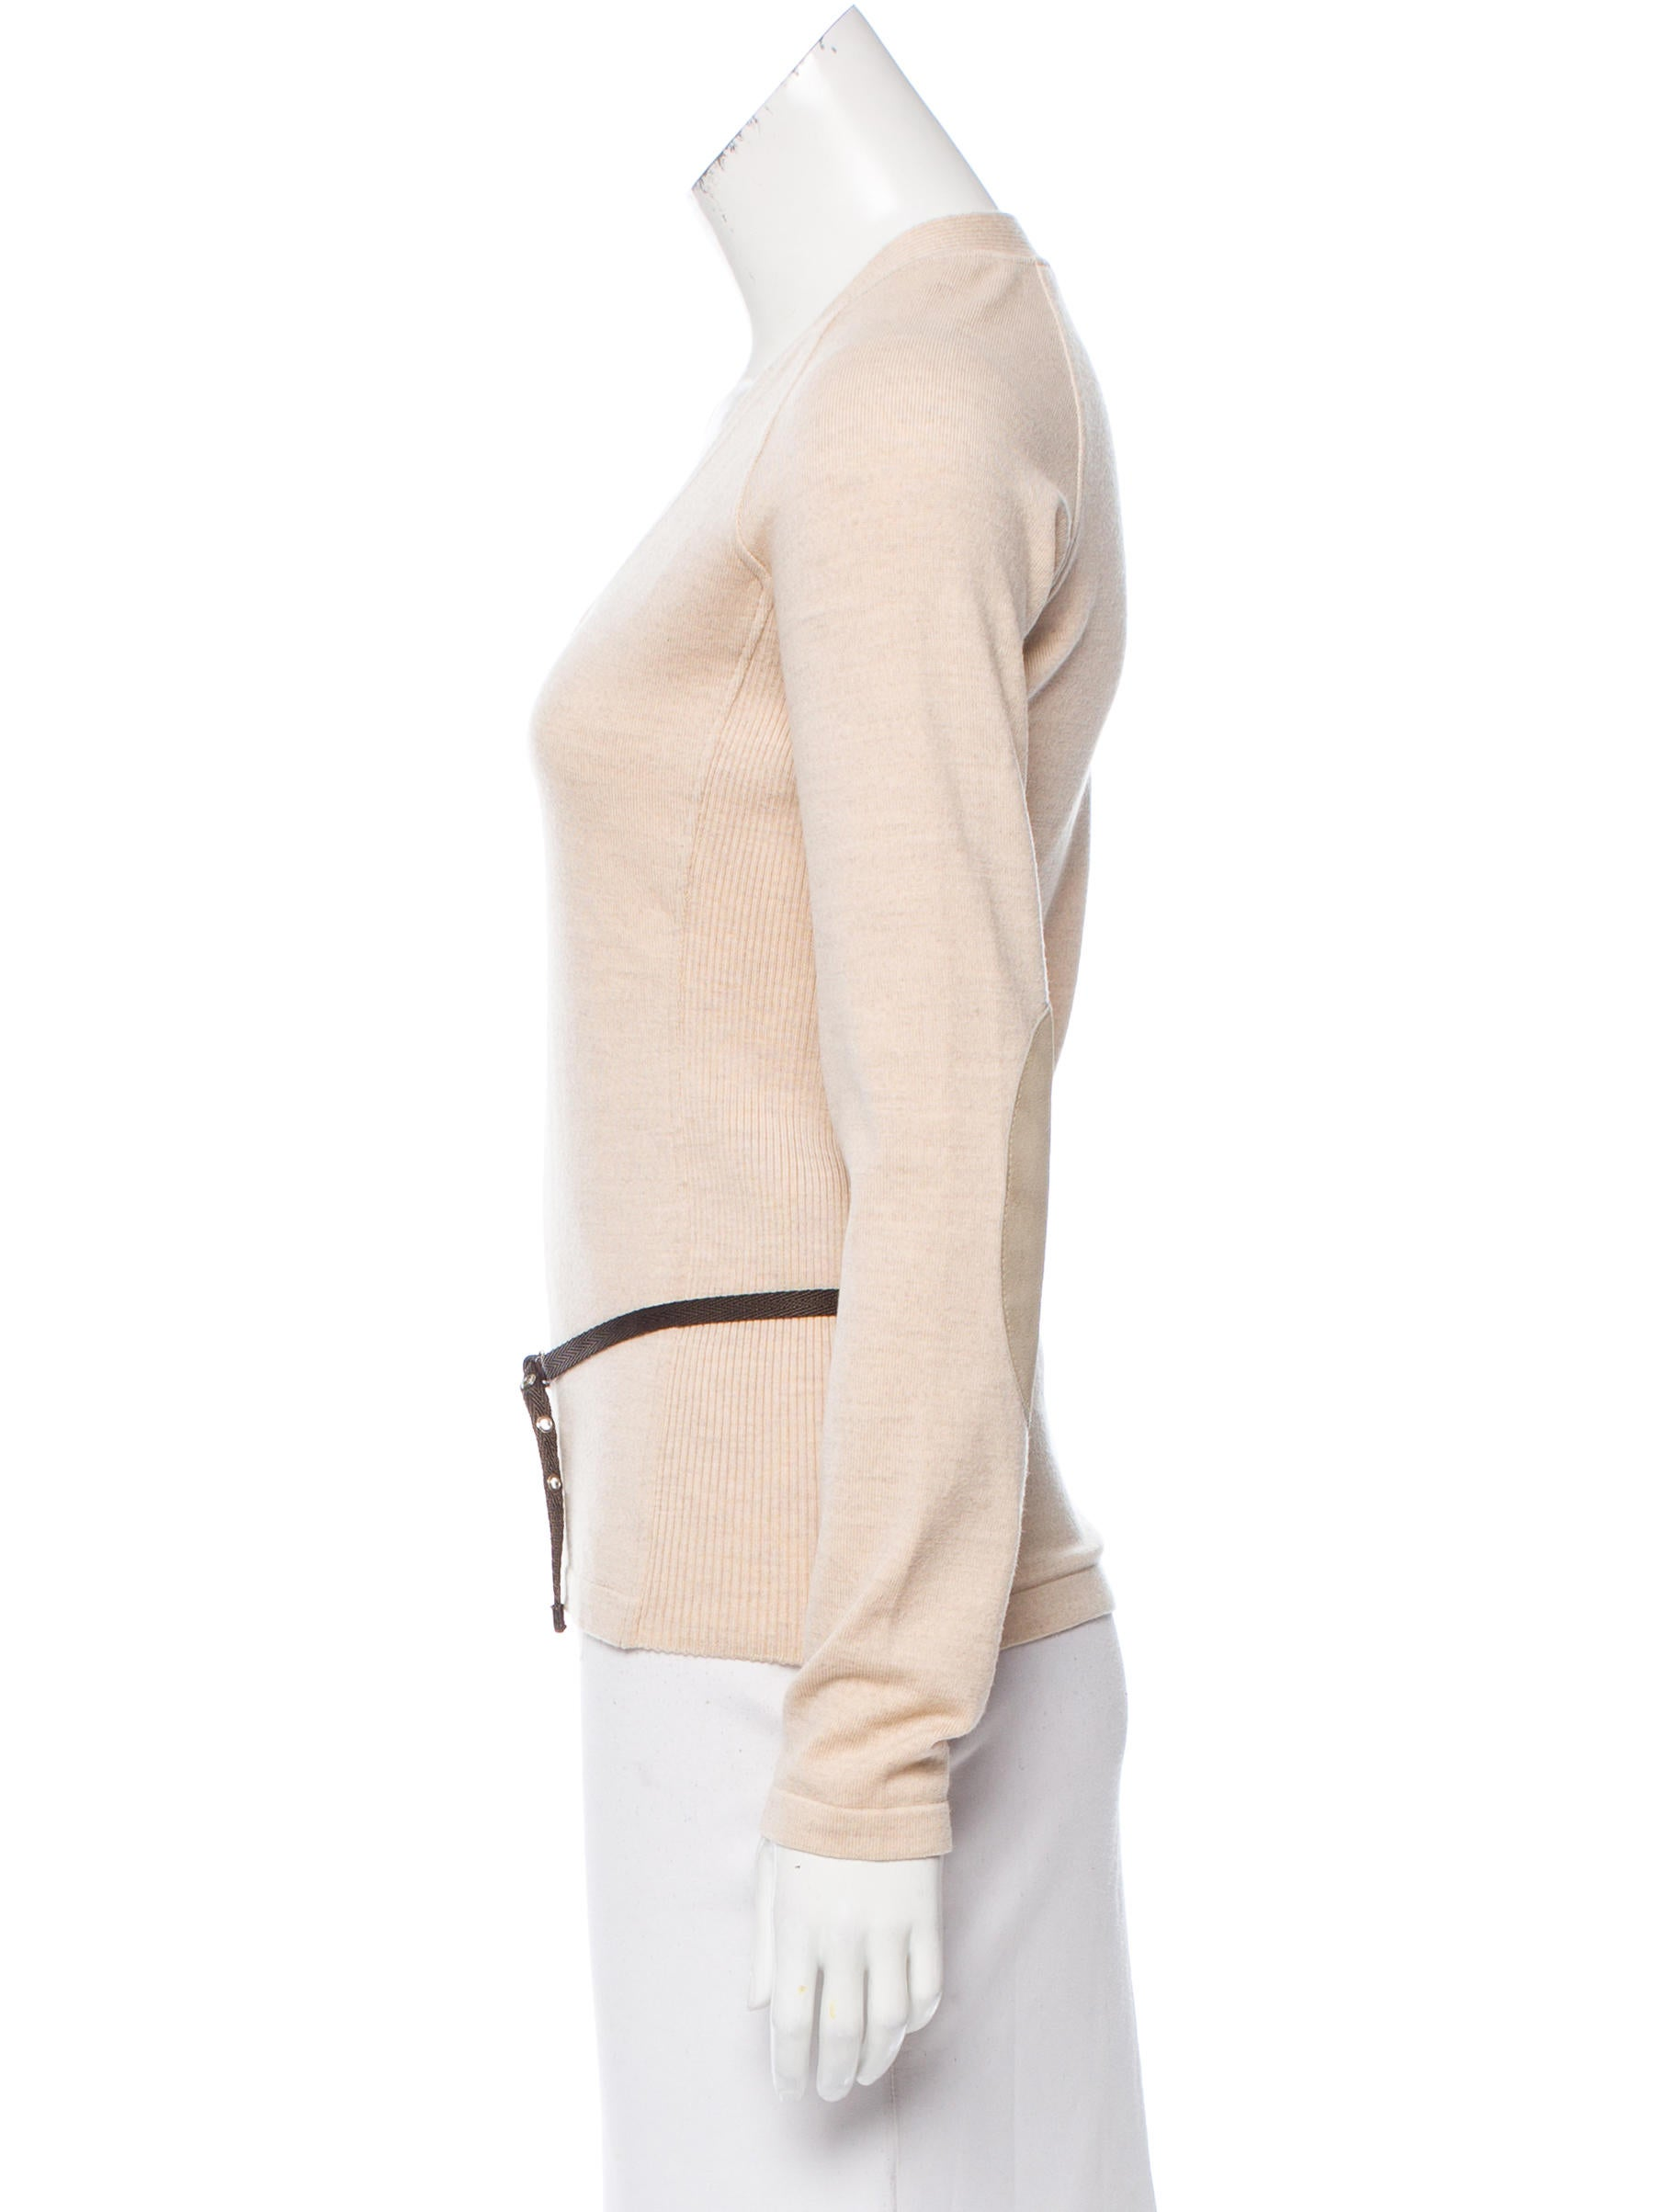 Find great deals on eBay for women sweater with elbow patches. Shop with confidence.